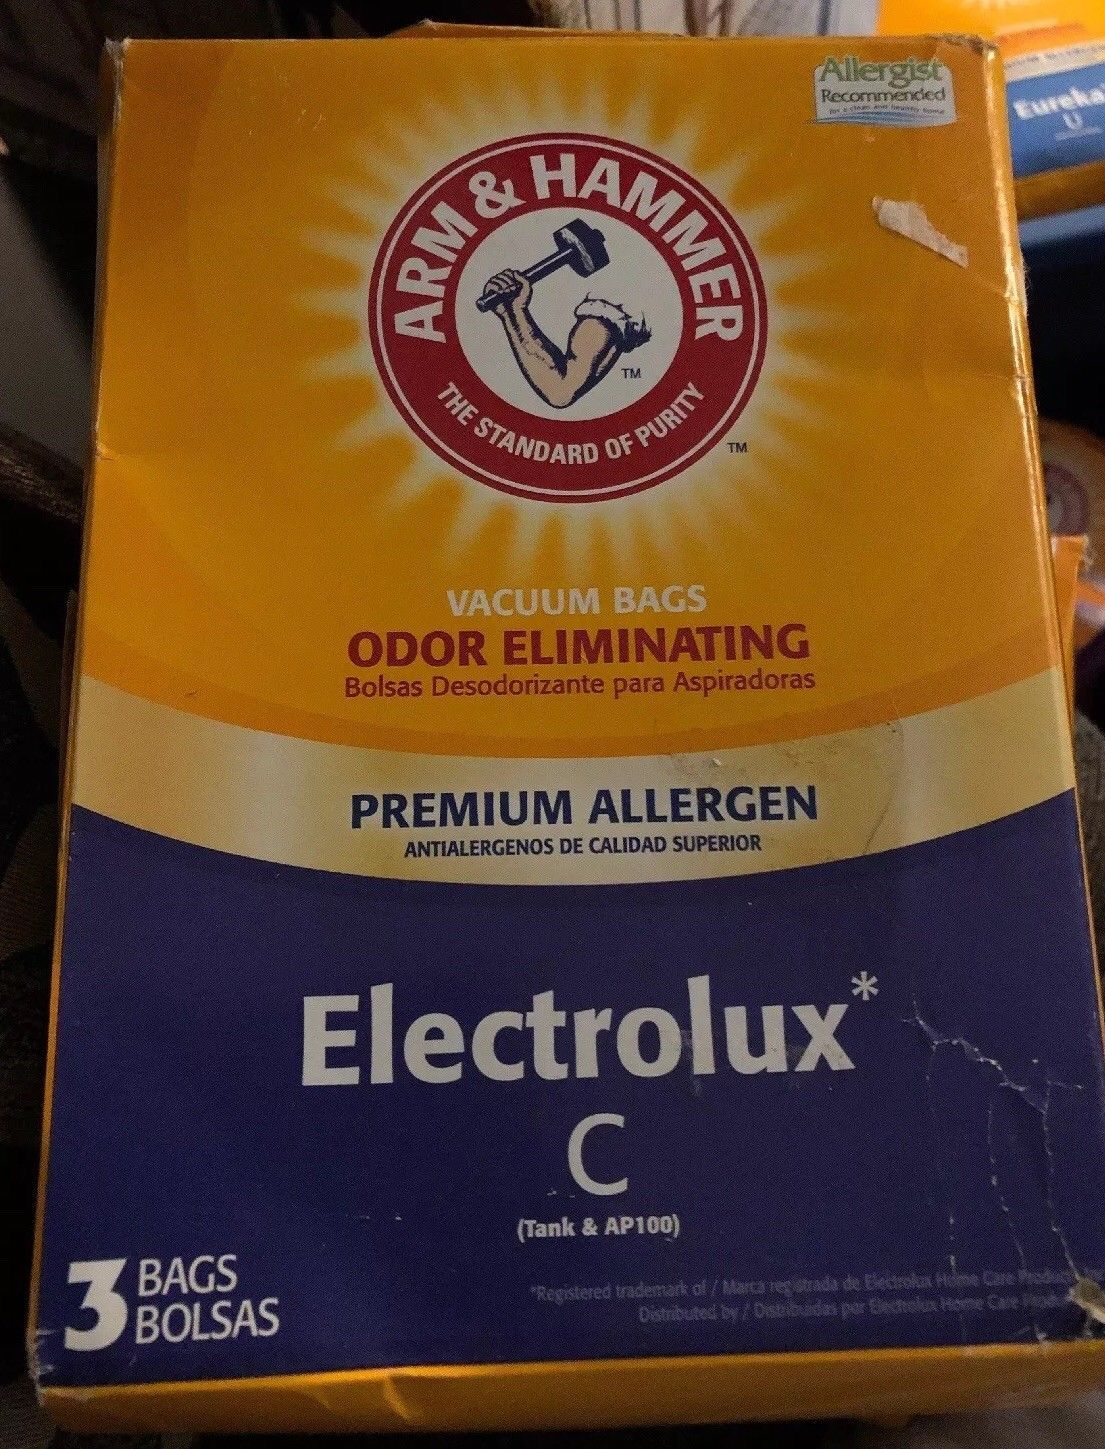 Arm & Hammer Odor Eliminating Vacuum Cleaner Bags Electrolux C Premium Allergen